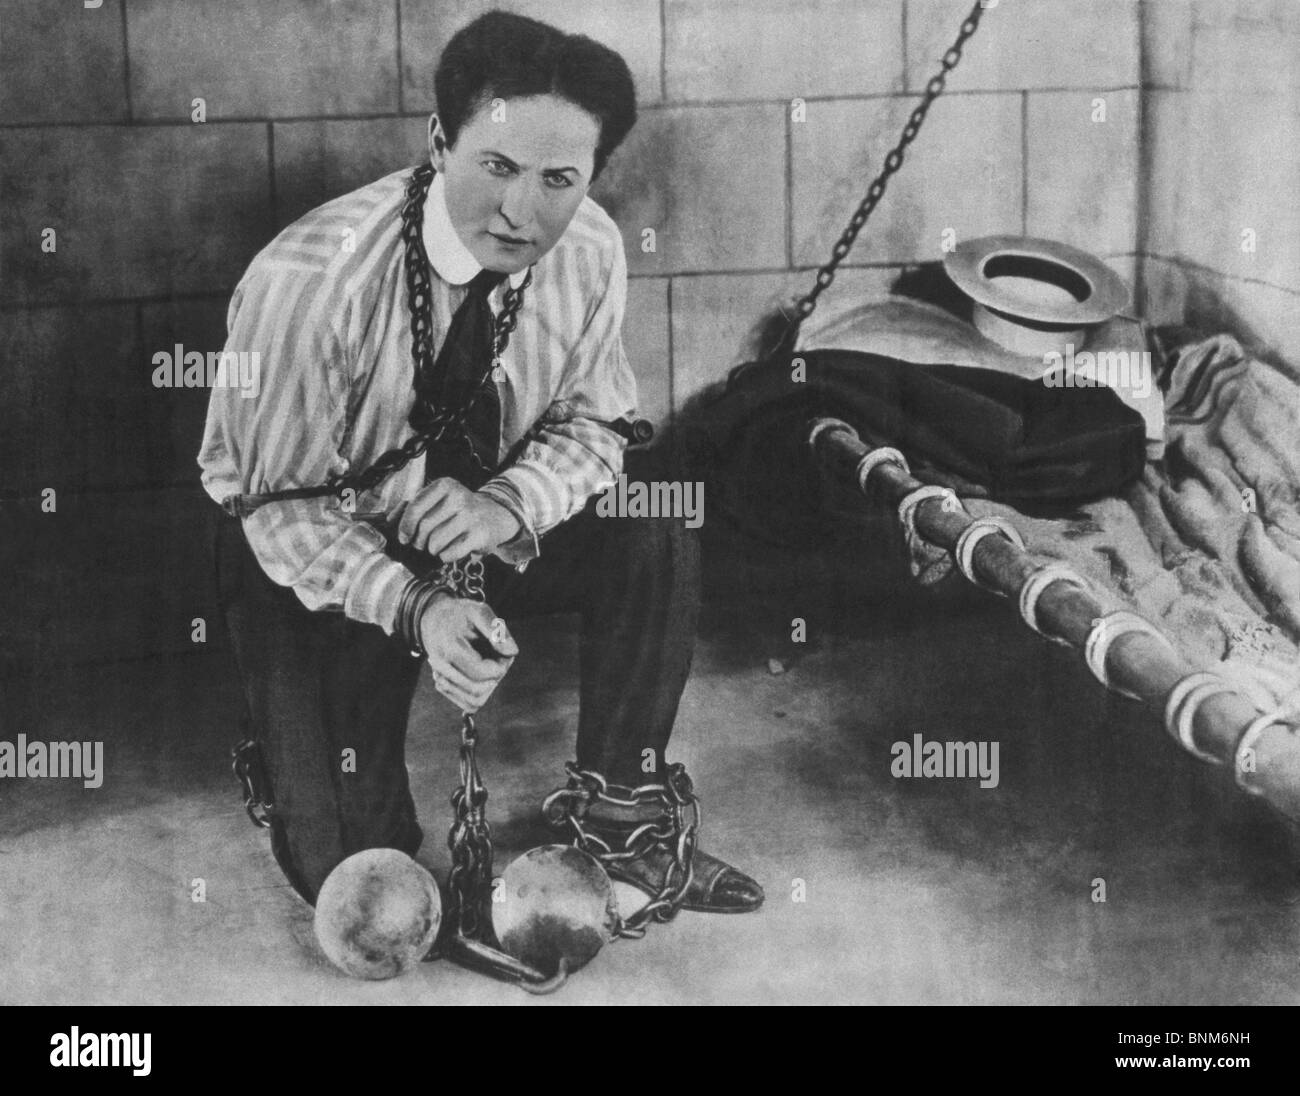 Promotional photo c1898 of magician + escapologist Harry Houdini (1874 - 1926) restrained in chains and locked in Stock Photo